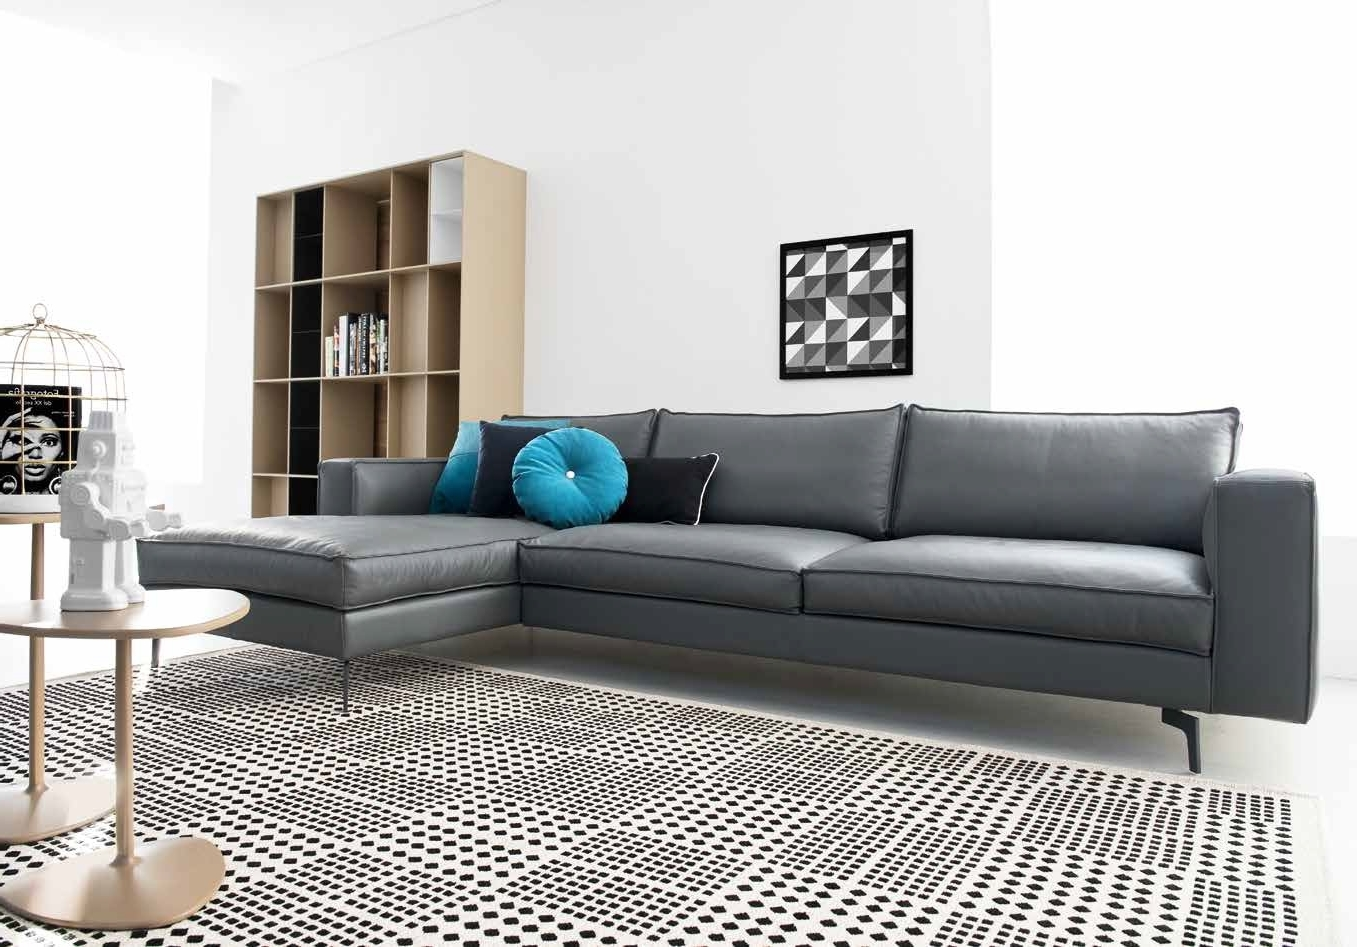 Nashua Nh Sectional Sofas With Most Recent Square Sectional Sofa Cs/3371, Calligaris Italy – Italmoda (View 5 of 20)